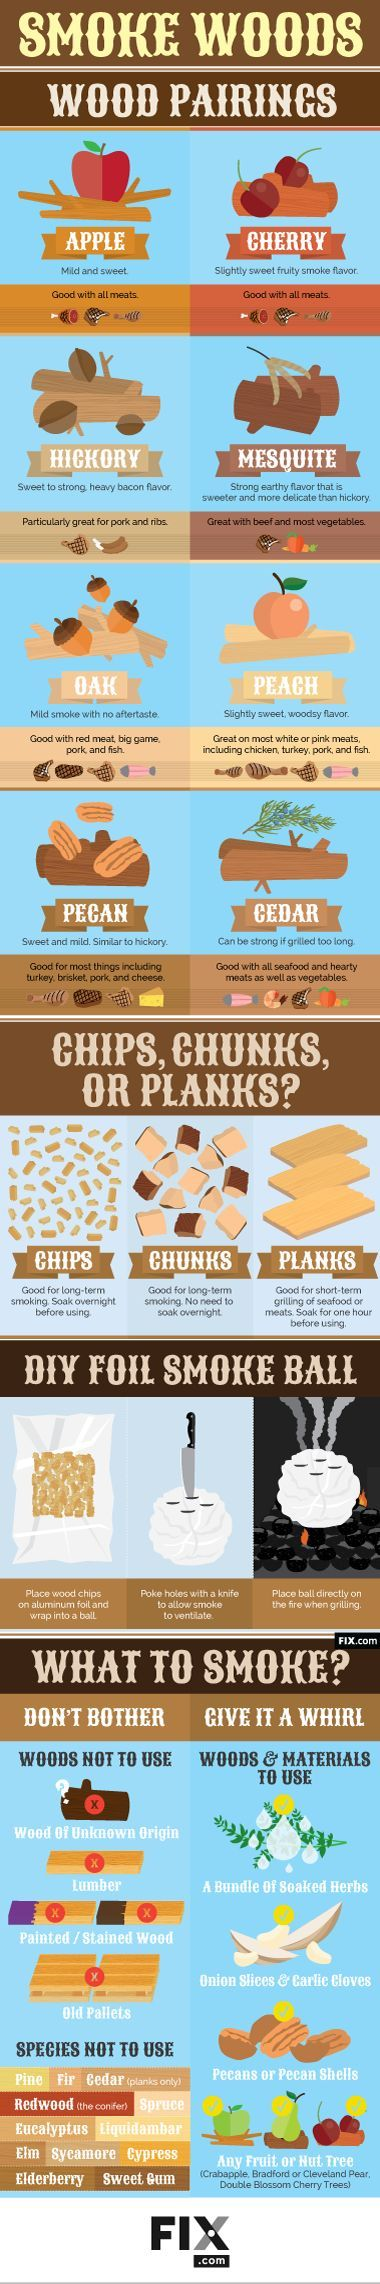 Does it smoke? Learn about the different types of woods you can use to turn your gas grill into a smoker.